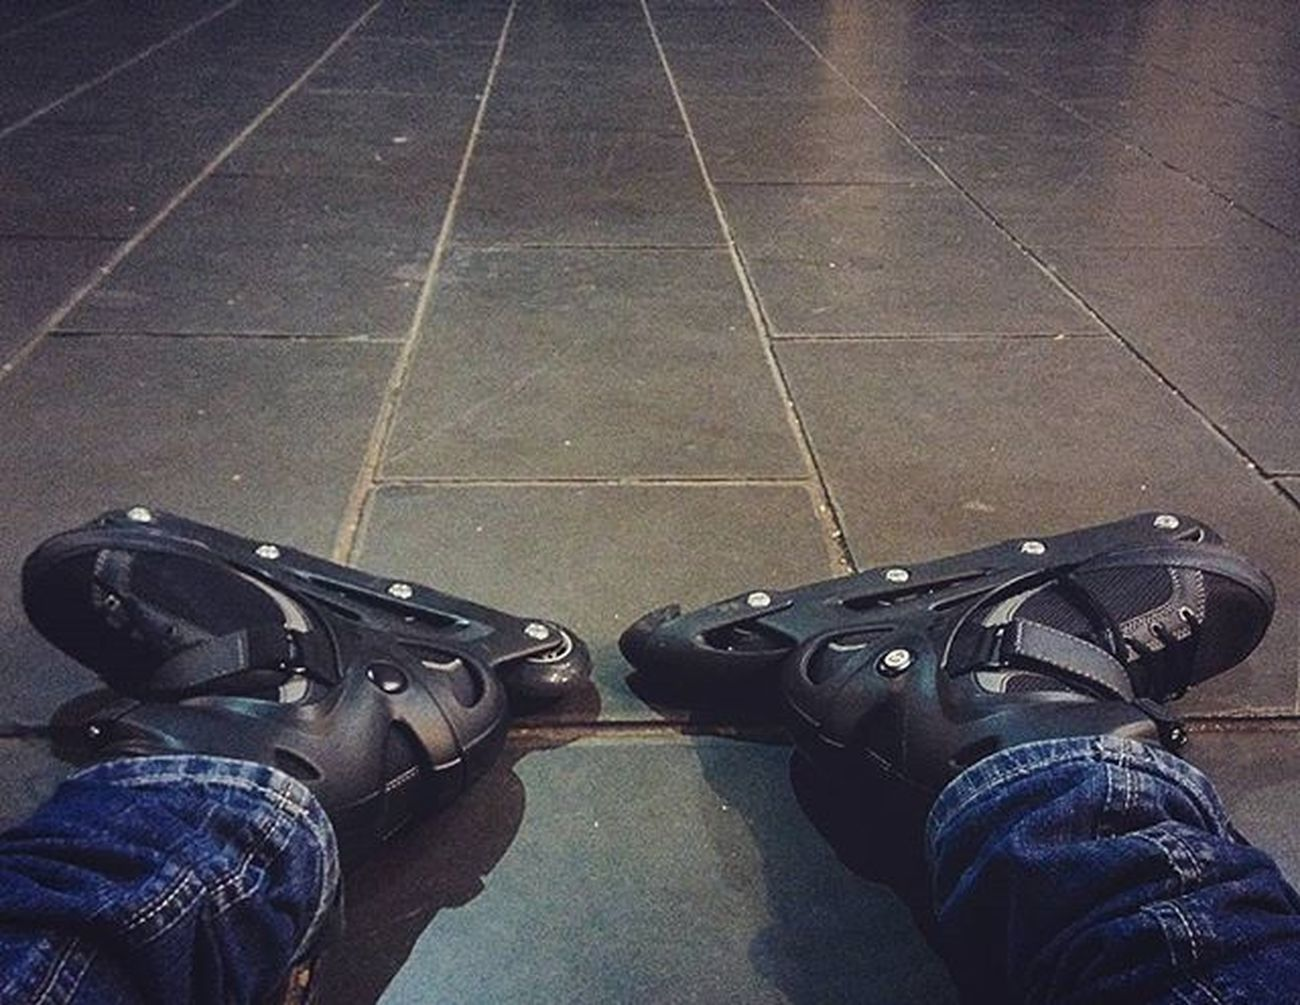 The freedom on the wheels! Lifeinshots Genova Genovatales Inlineskate Skating Onthewheels Sport Flying Newsport Adventure Lifestyle Zenaroller Italy Italia Instaitalia Follow Followback Followme Likeforlike Like4like